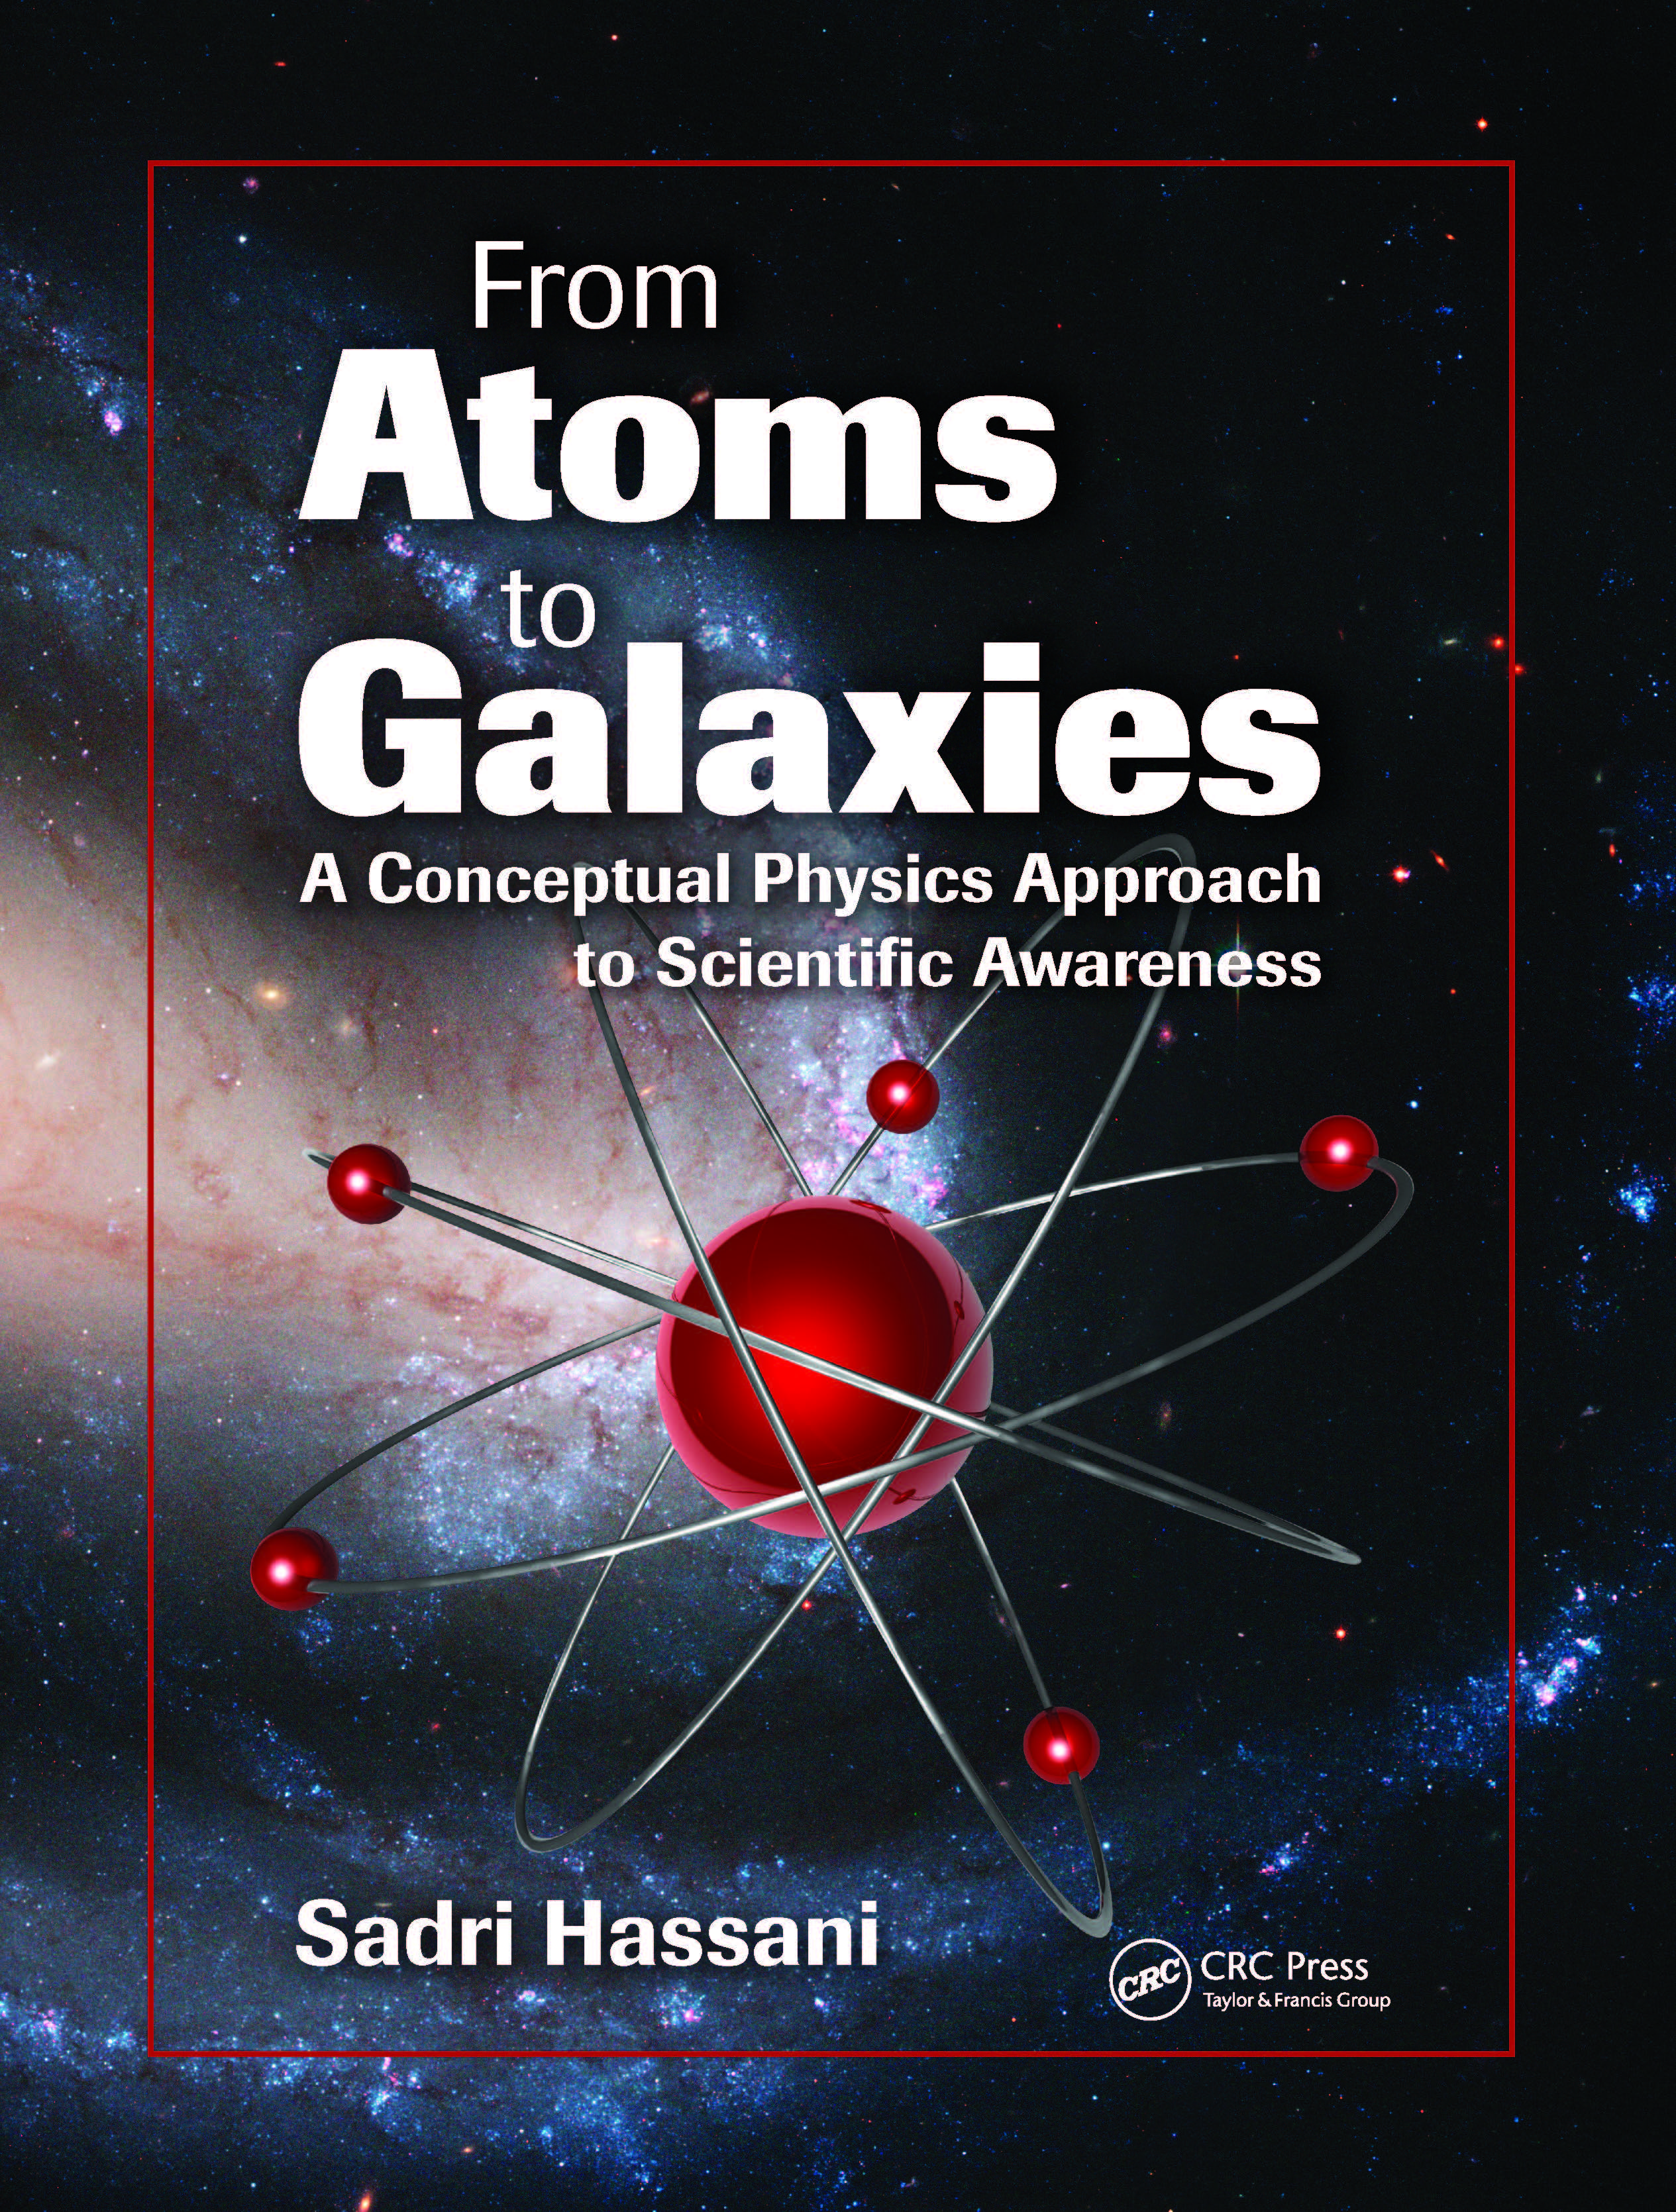 From Atoms to Galaxies: A Conceptual Physics Approach to Scientific Awareness book cover